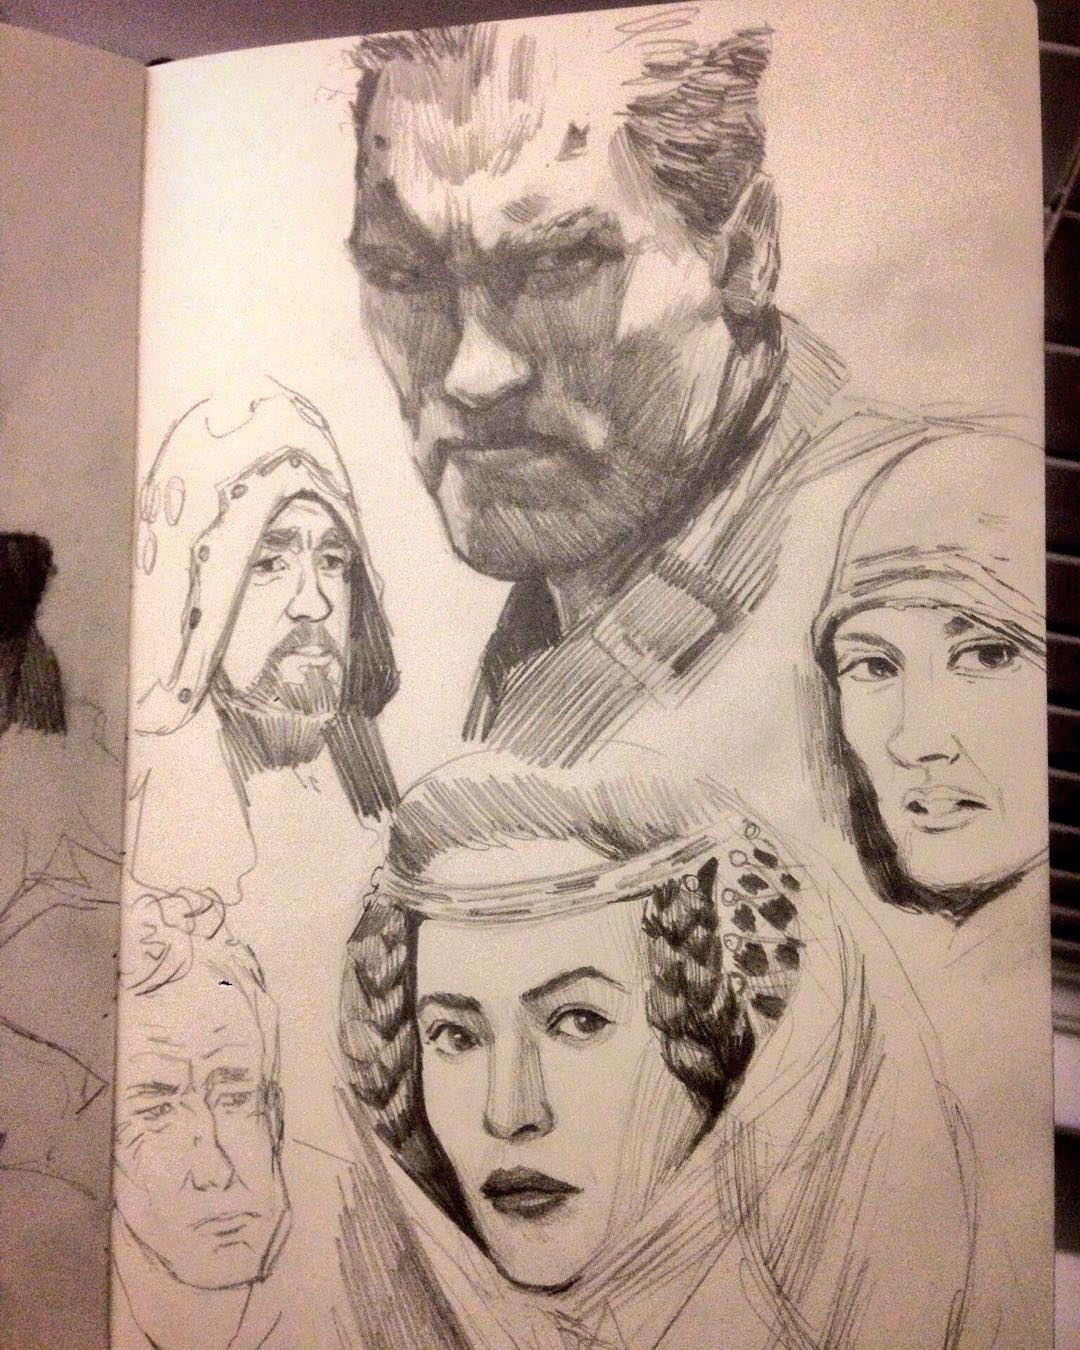 Warm ups from this weekend  #arnoldschwarzenegger #Braveheart #drawing #terminator2  #study #film #jamescameron  #willamwalace #movie #sketches #asketchaday #molskine #faces #shadows #asketchaday #asketchaday2016